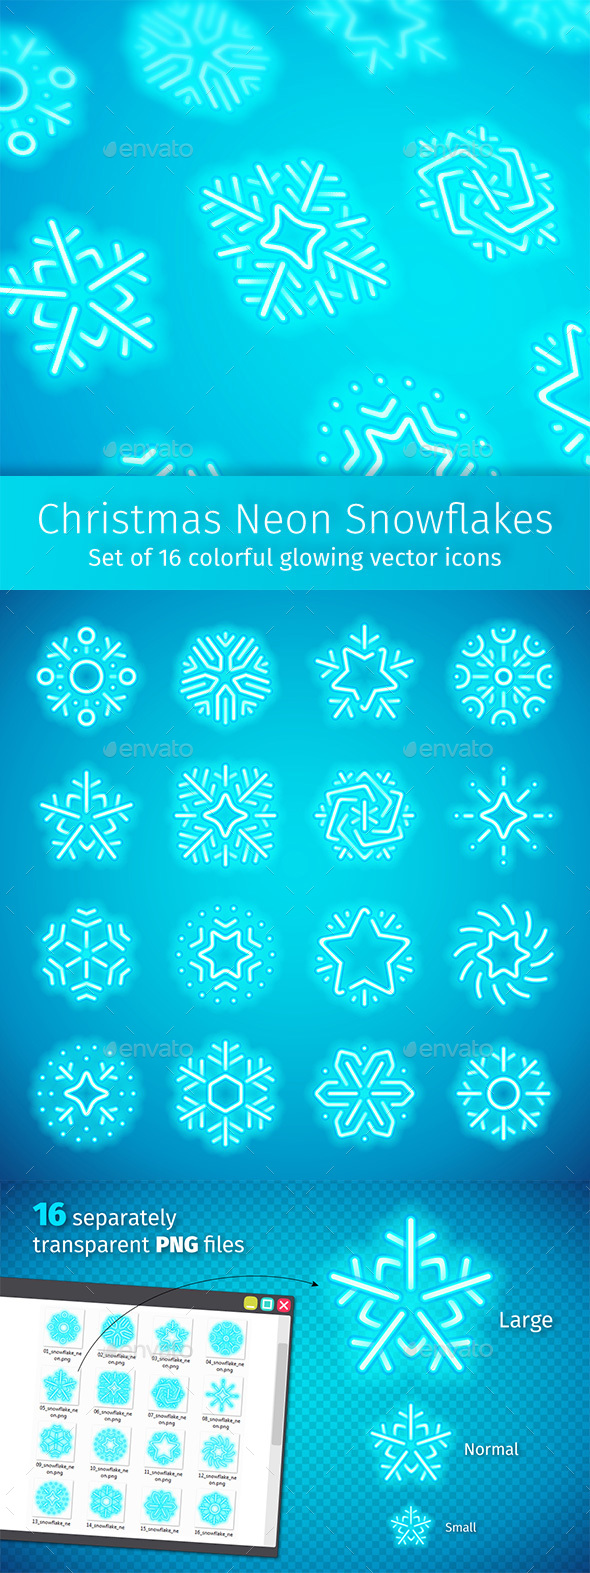 Christmas Neon Snowflakes - Seasonal Icons